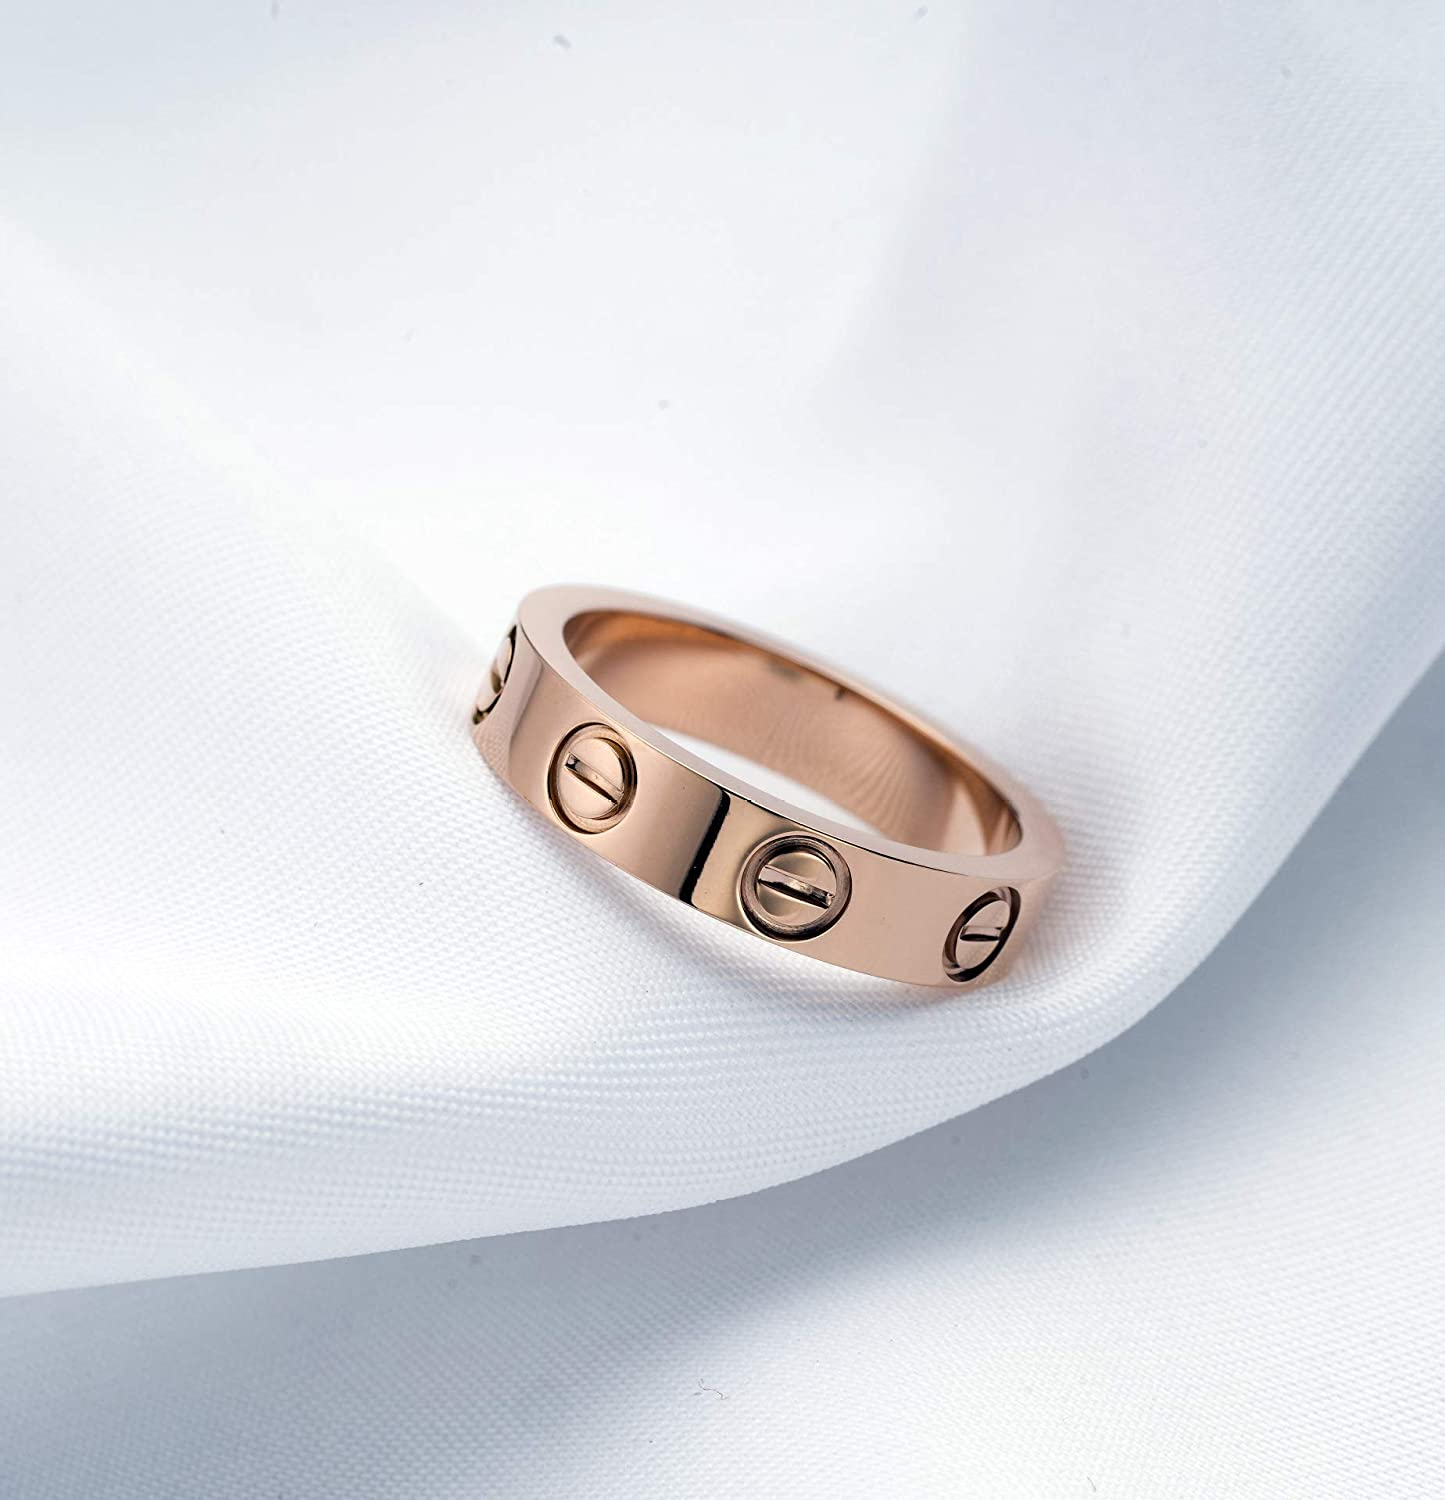 A/&B Love Ring Lifetime Promise with Screw Design Best Lover Rings Gifts for Lover